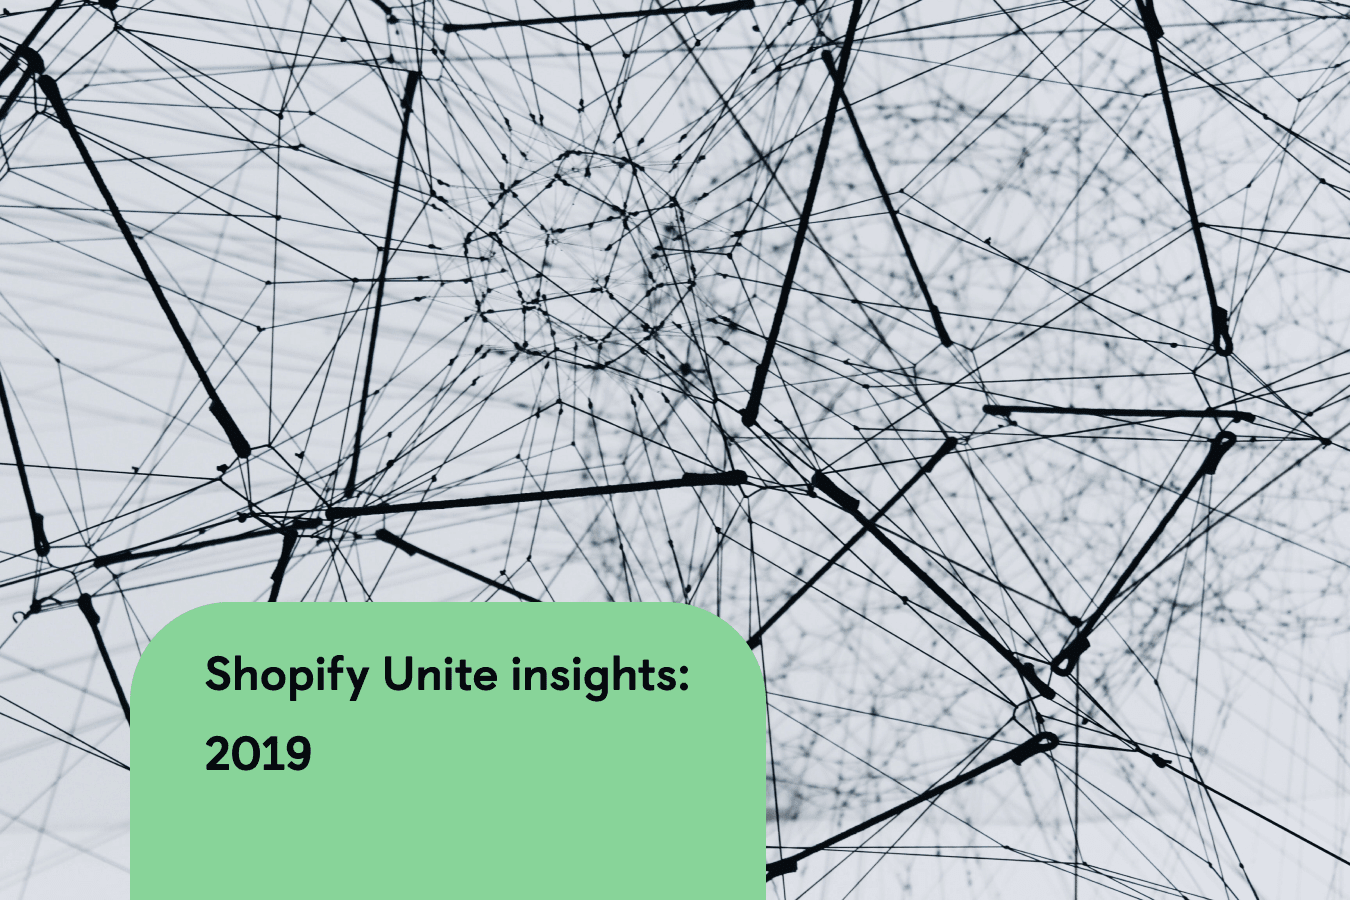 Shopify Unite event insights from Firepush